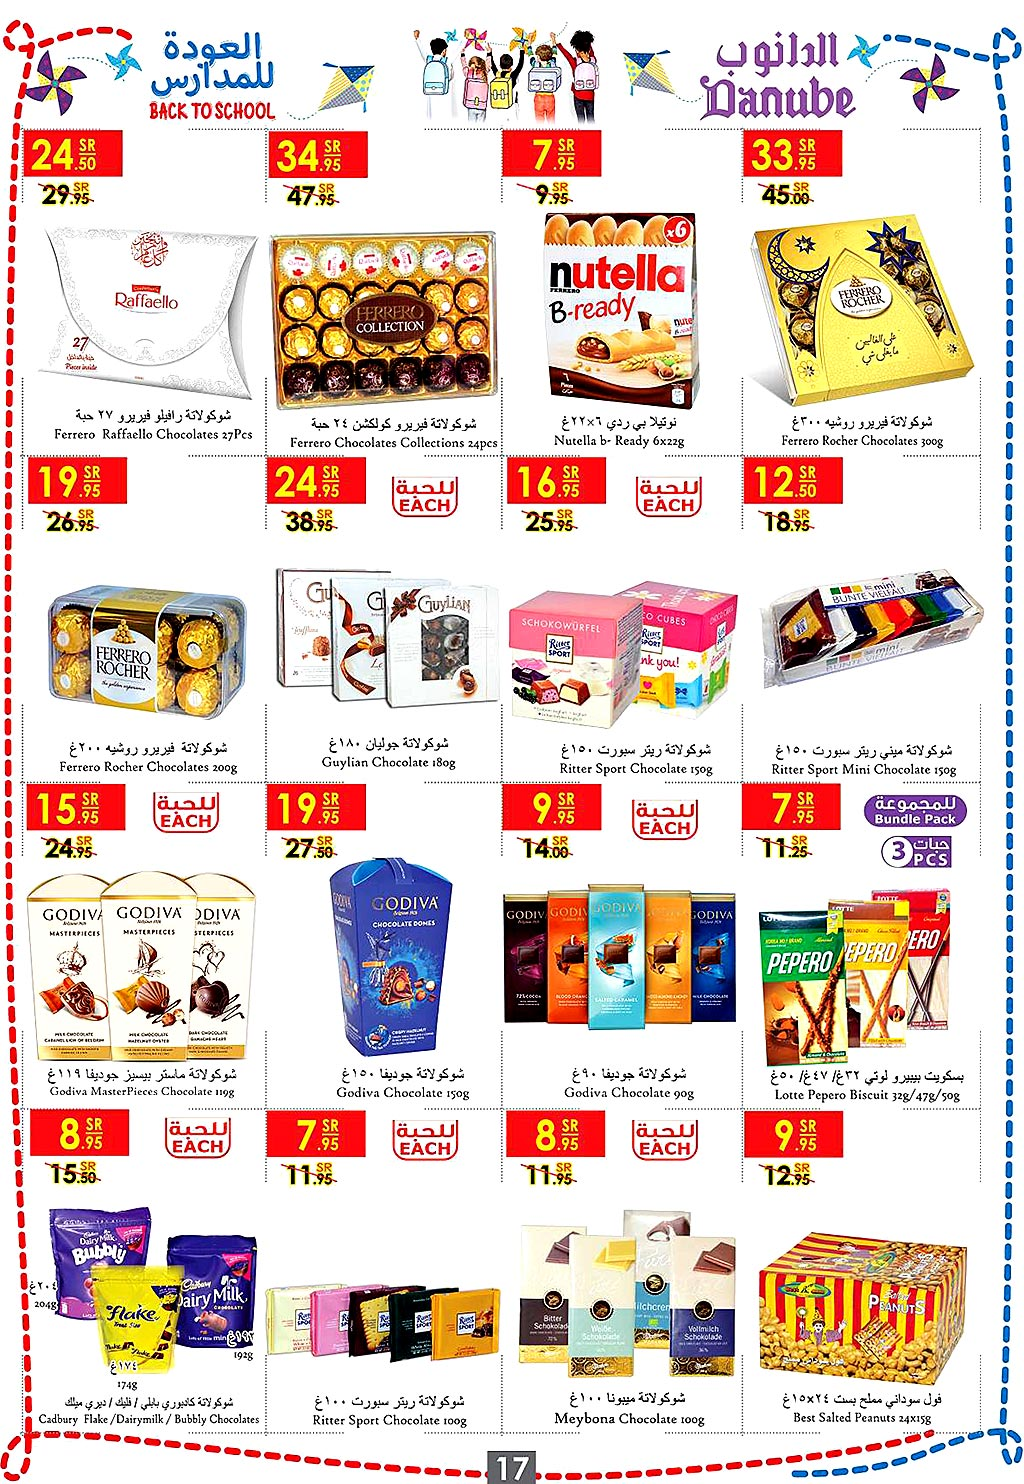 danube offers from 7aug to 21aug 2019 page number 16 عروض الدانوب من 7 أغسطس حتى 21 أغسطس 2019 صفحة رقم 16